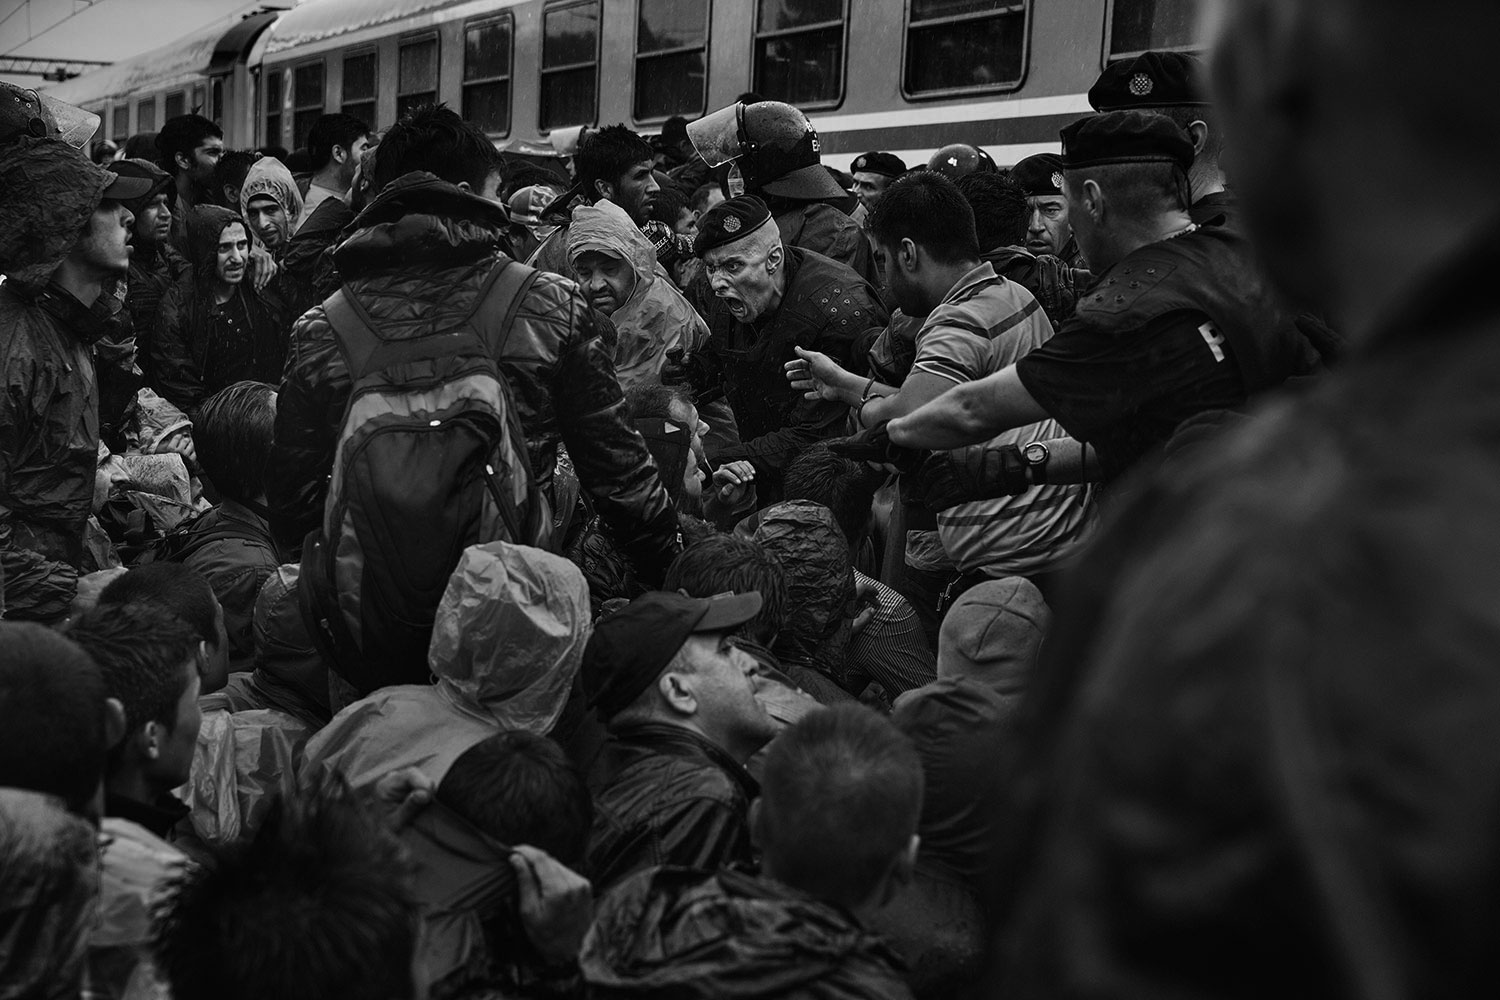 A police officer screams at refugees as they attempt to board a train in Tovarnik, Croatia, close to the border with Serbia.                                                              From Tovarnik, refugees boarded trains and buses to be transported to either Hungary or Slovenia, then to be taken to border with Austria and onward.                                Sept. 17, 2015.